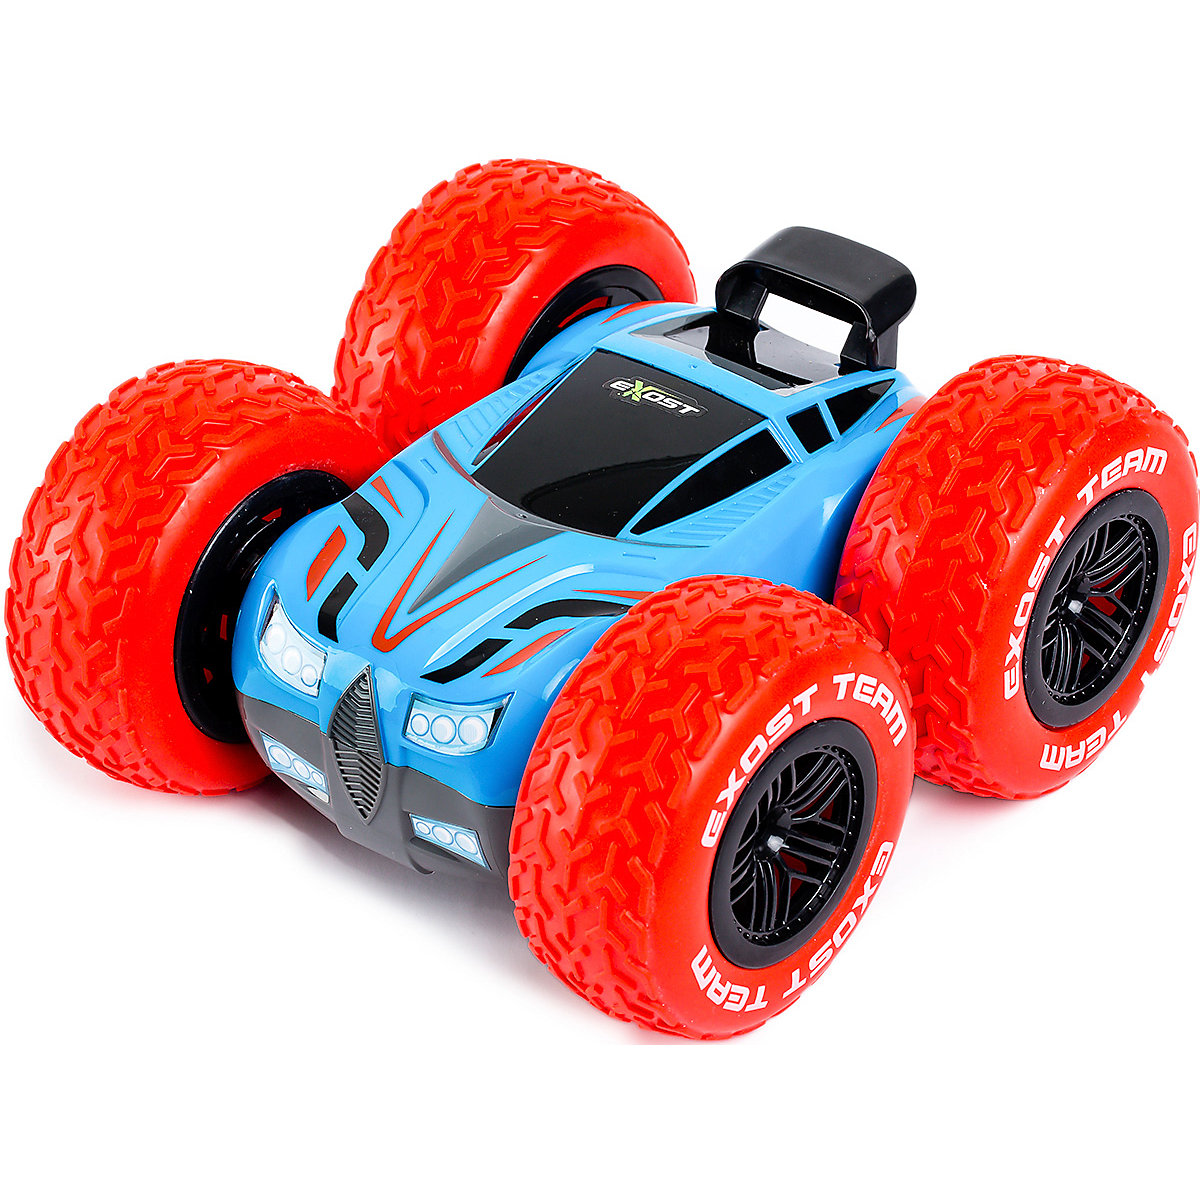 Silverlit RC Cars 10077713 Remote Control Toys radio-controlled toy games children Kids car 4022d car radio music player with rear view camera support bluetooth mp5 mp4 mp3 fm transmitter car video with remote control